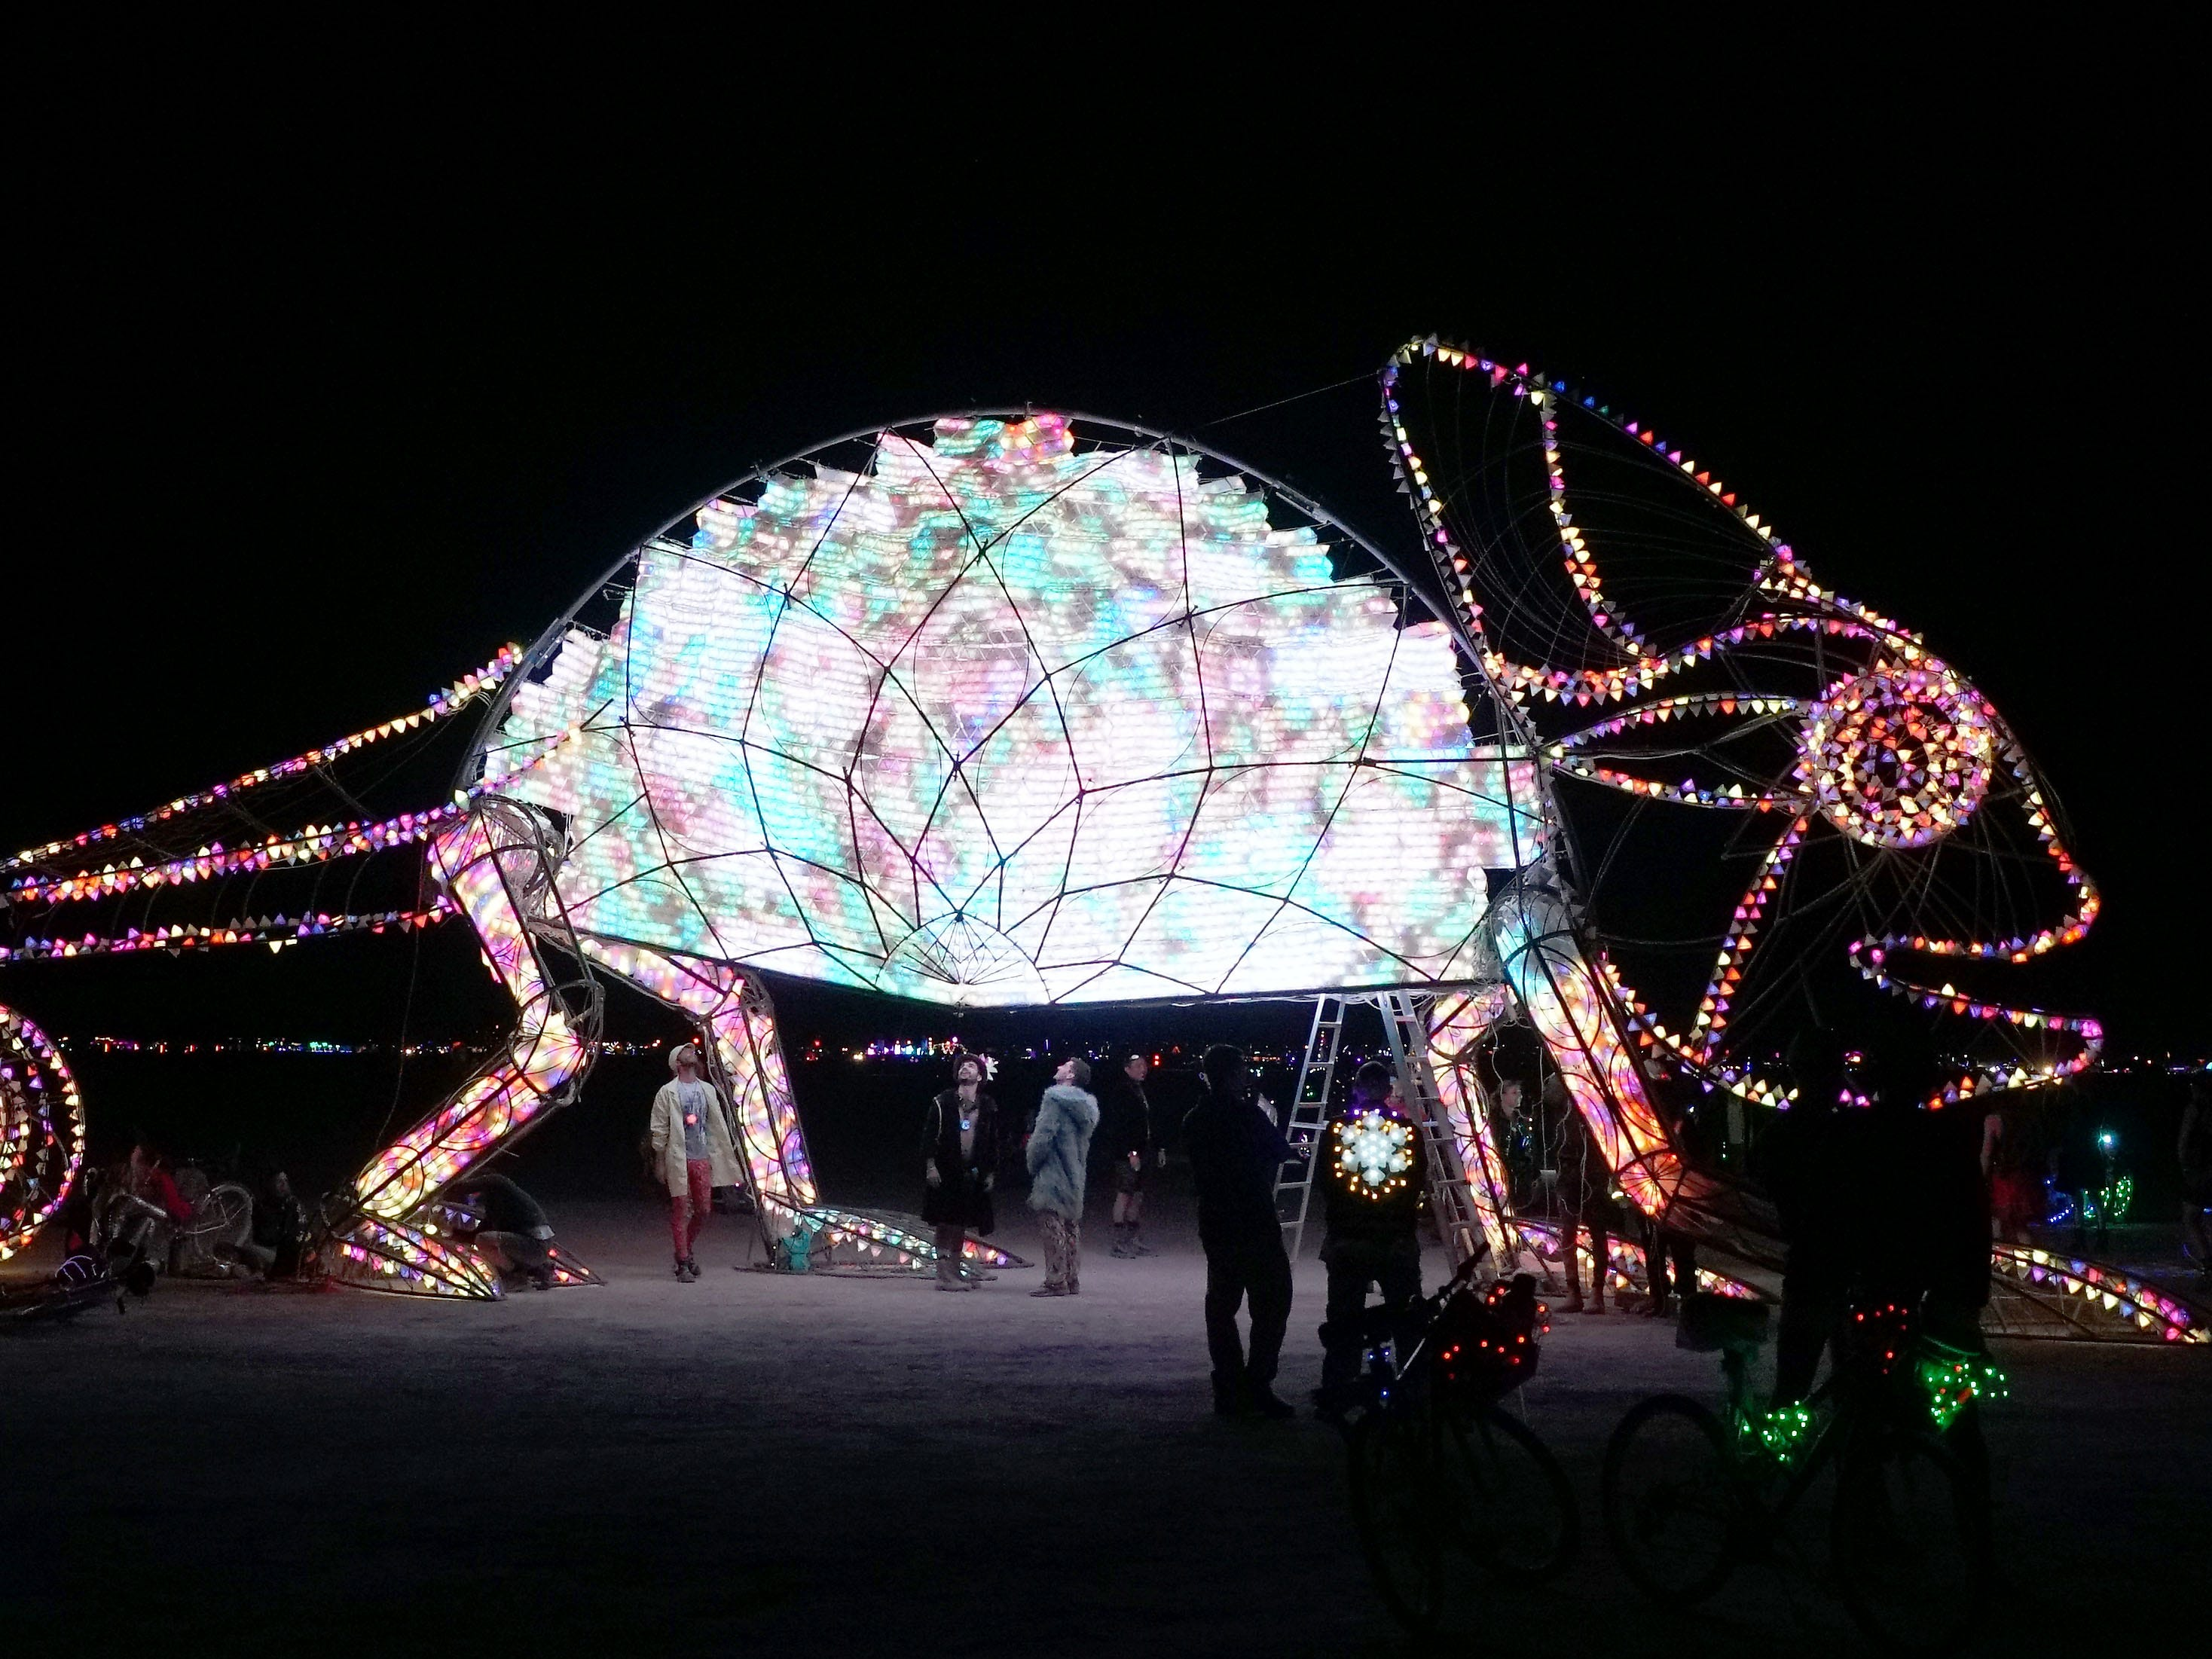 Burning Man attendees walk beneath an illuminated chameleon late at night.